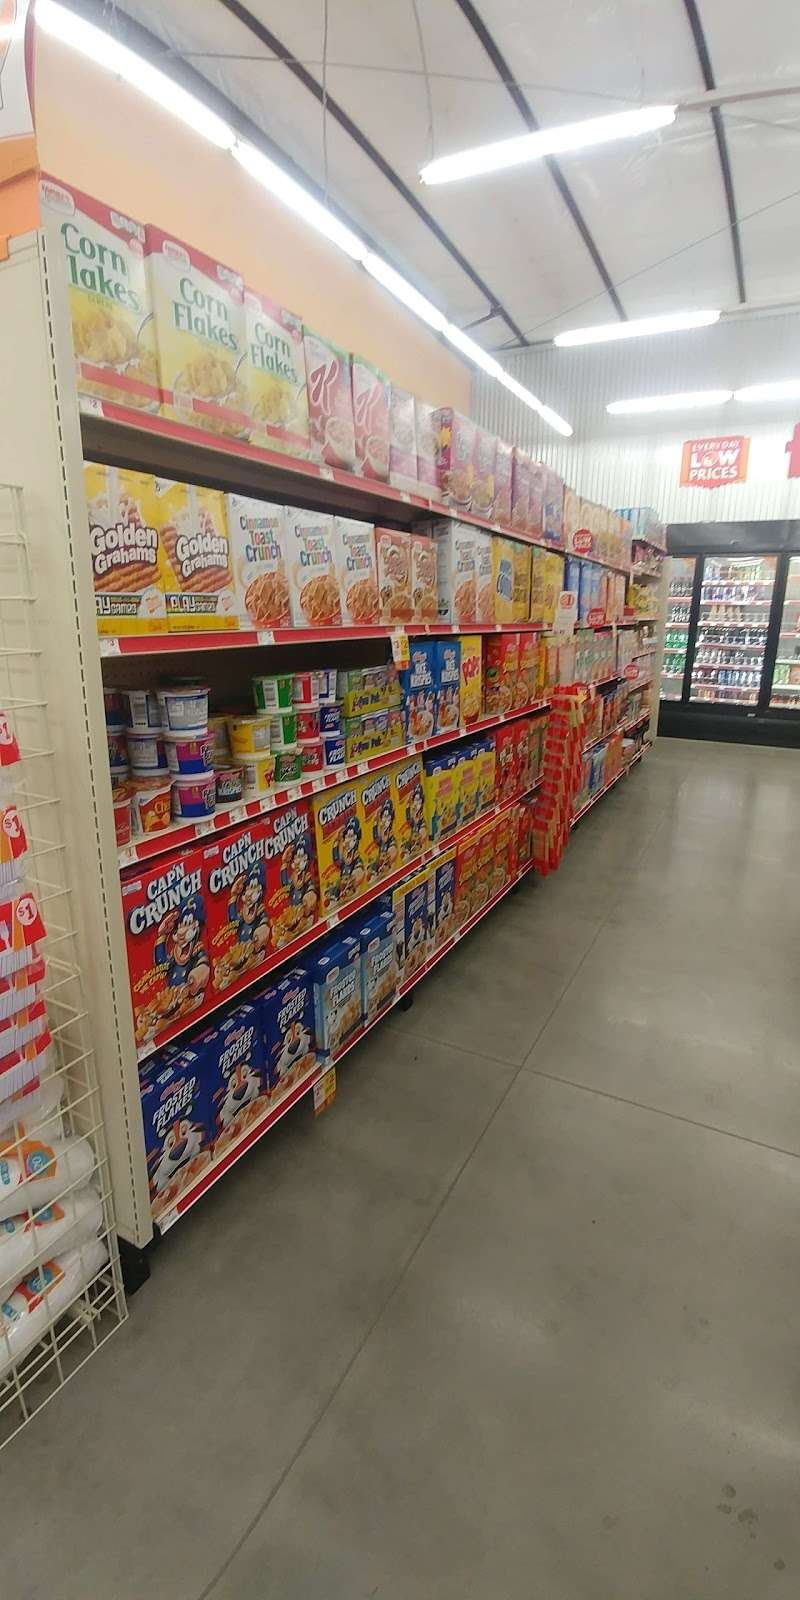 Family Dollar - supermarket  | Photo 1 of 5 | Address: 14 S West Blvd, Newfield, NJ 08344, USA | Phone: (856) 457-6130